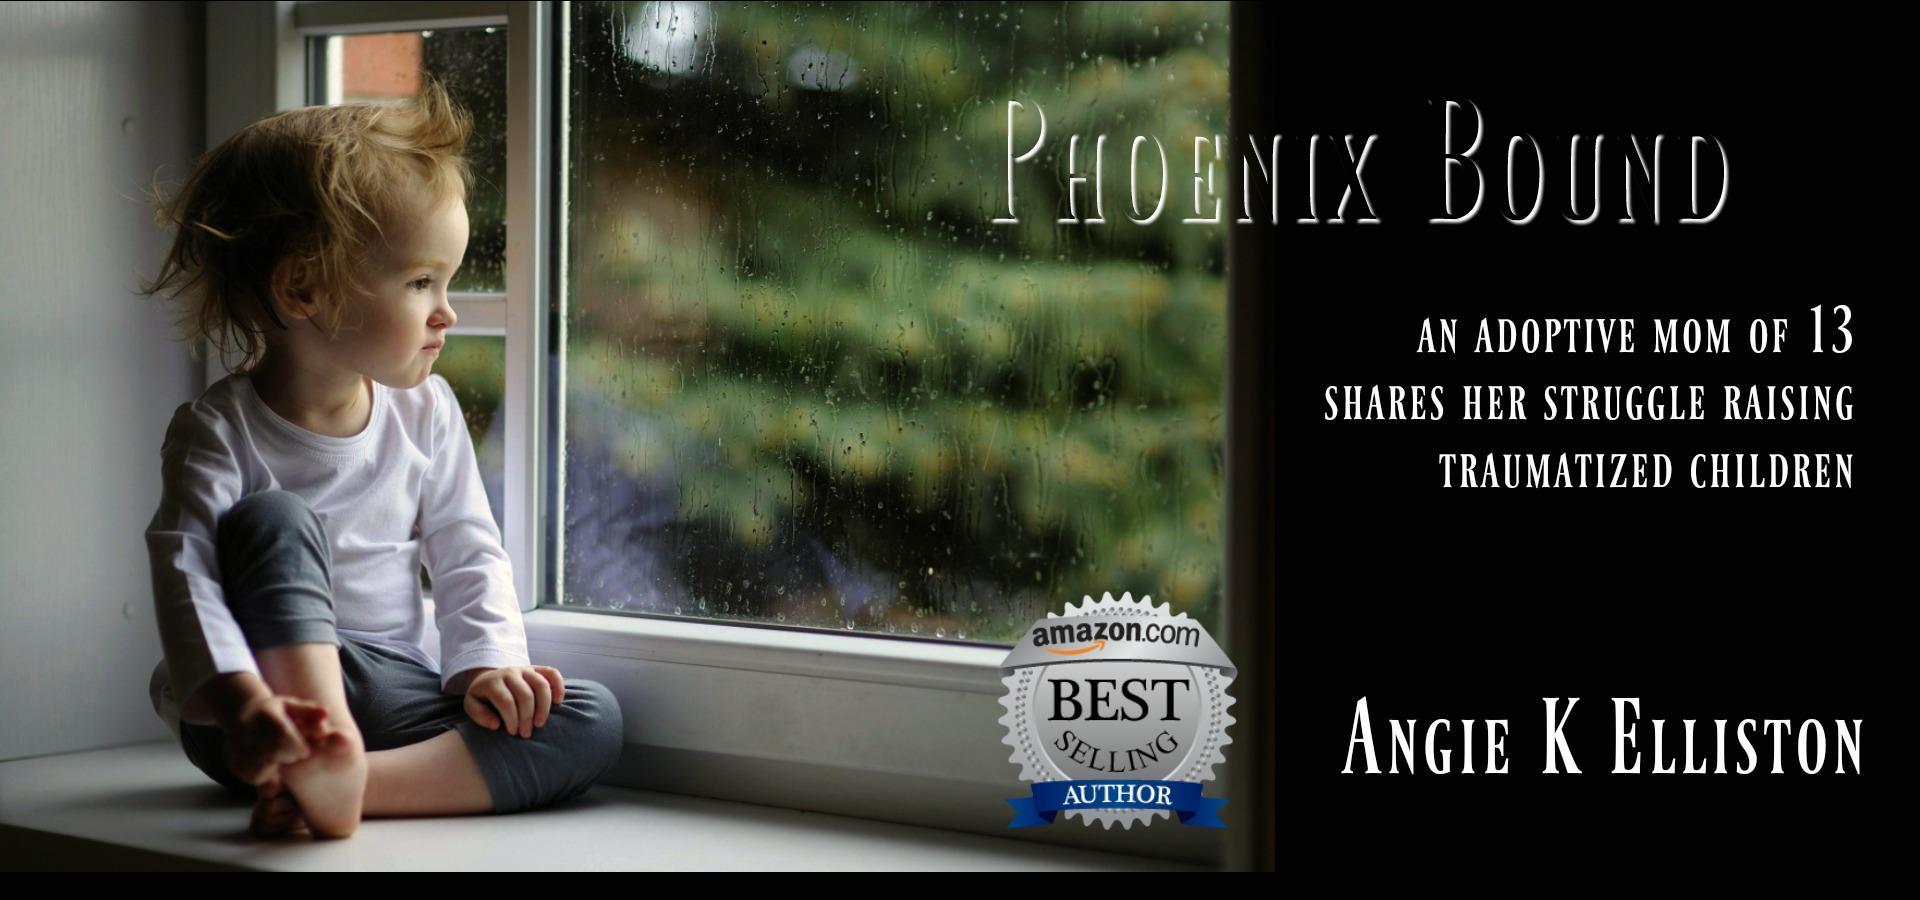 phoenix bound_child in window